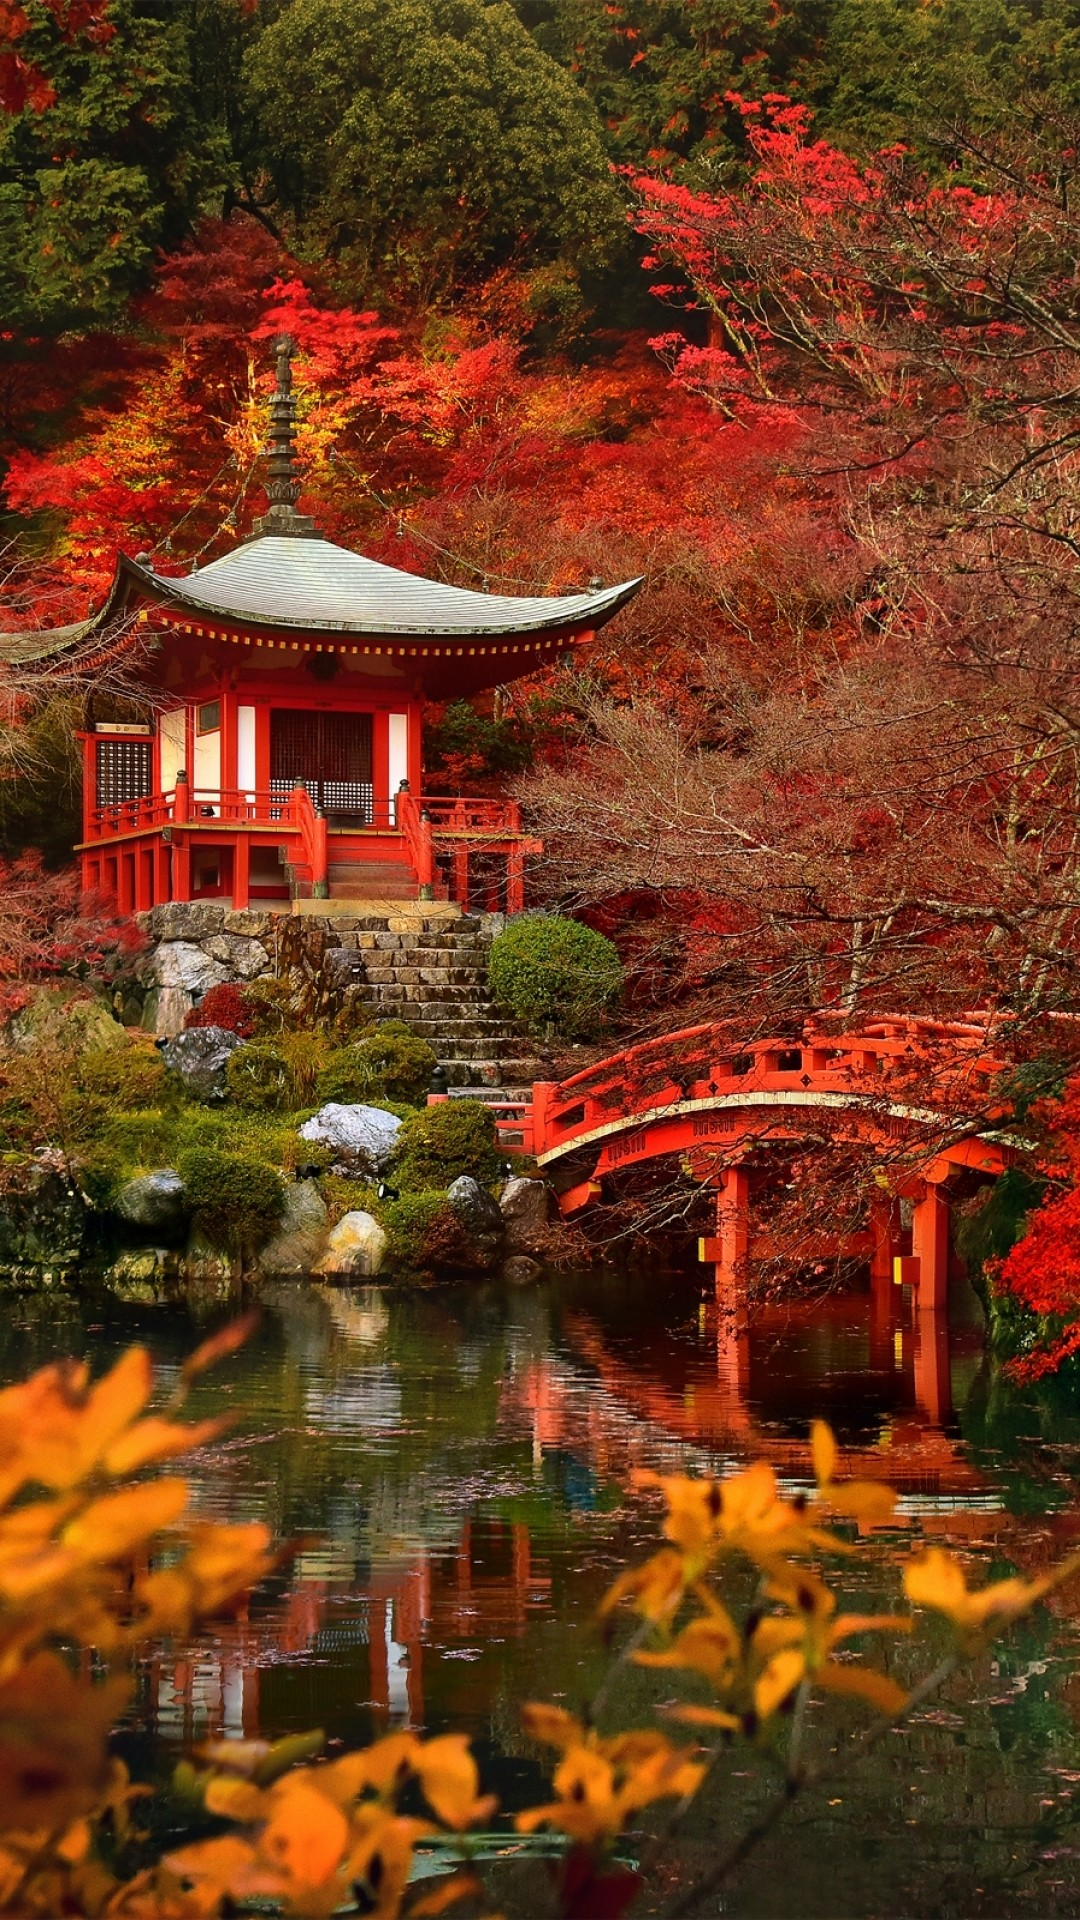 Autumn In Japan – Tap to see more beautiful nature wallpapers! – @mobile9